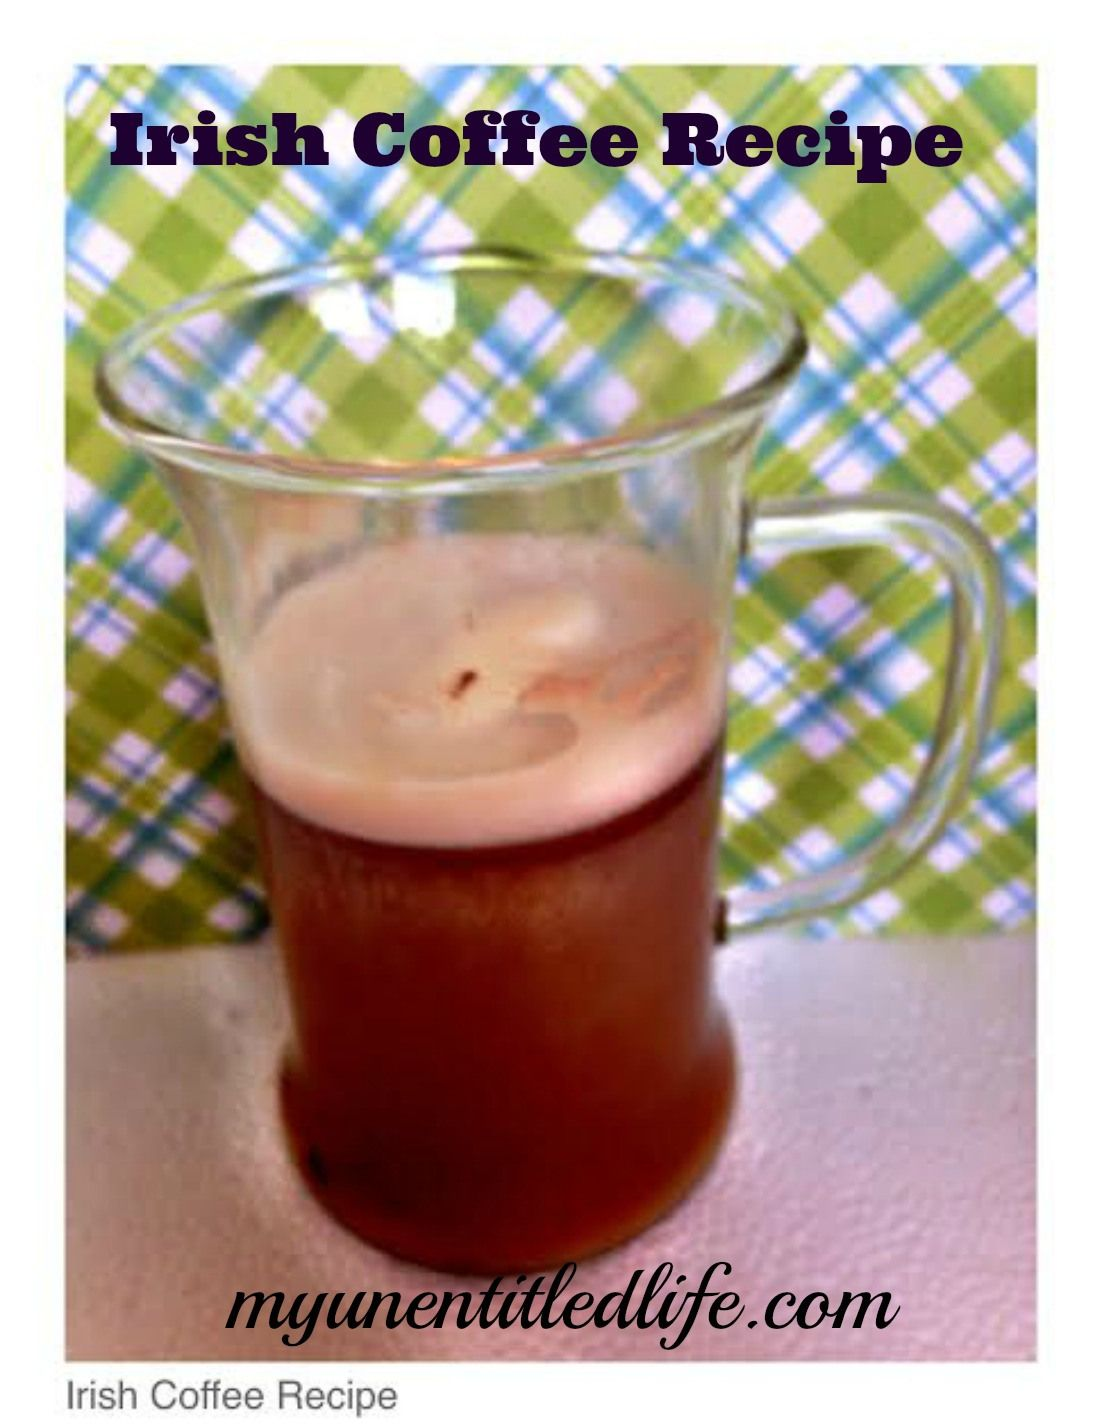 irish coffee recipe~Great for St. Patrick's Day and the weekend